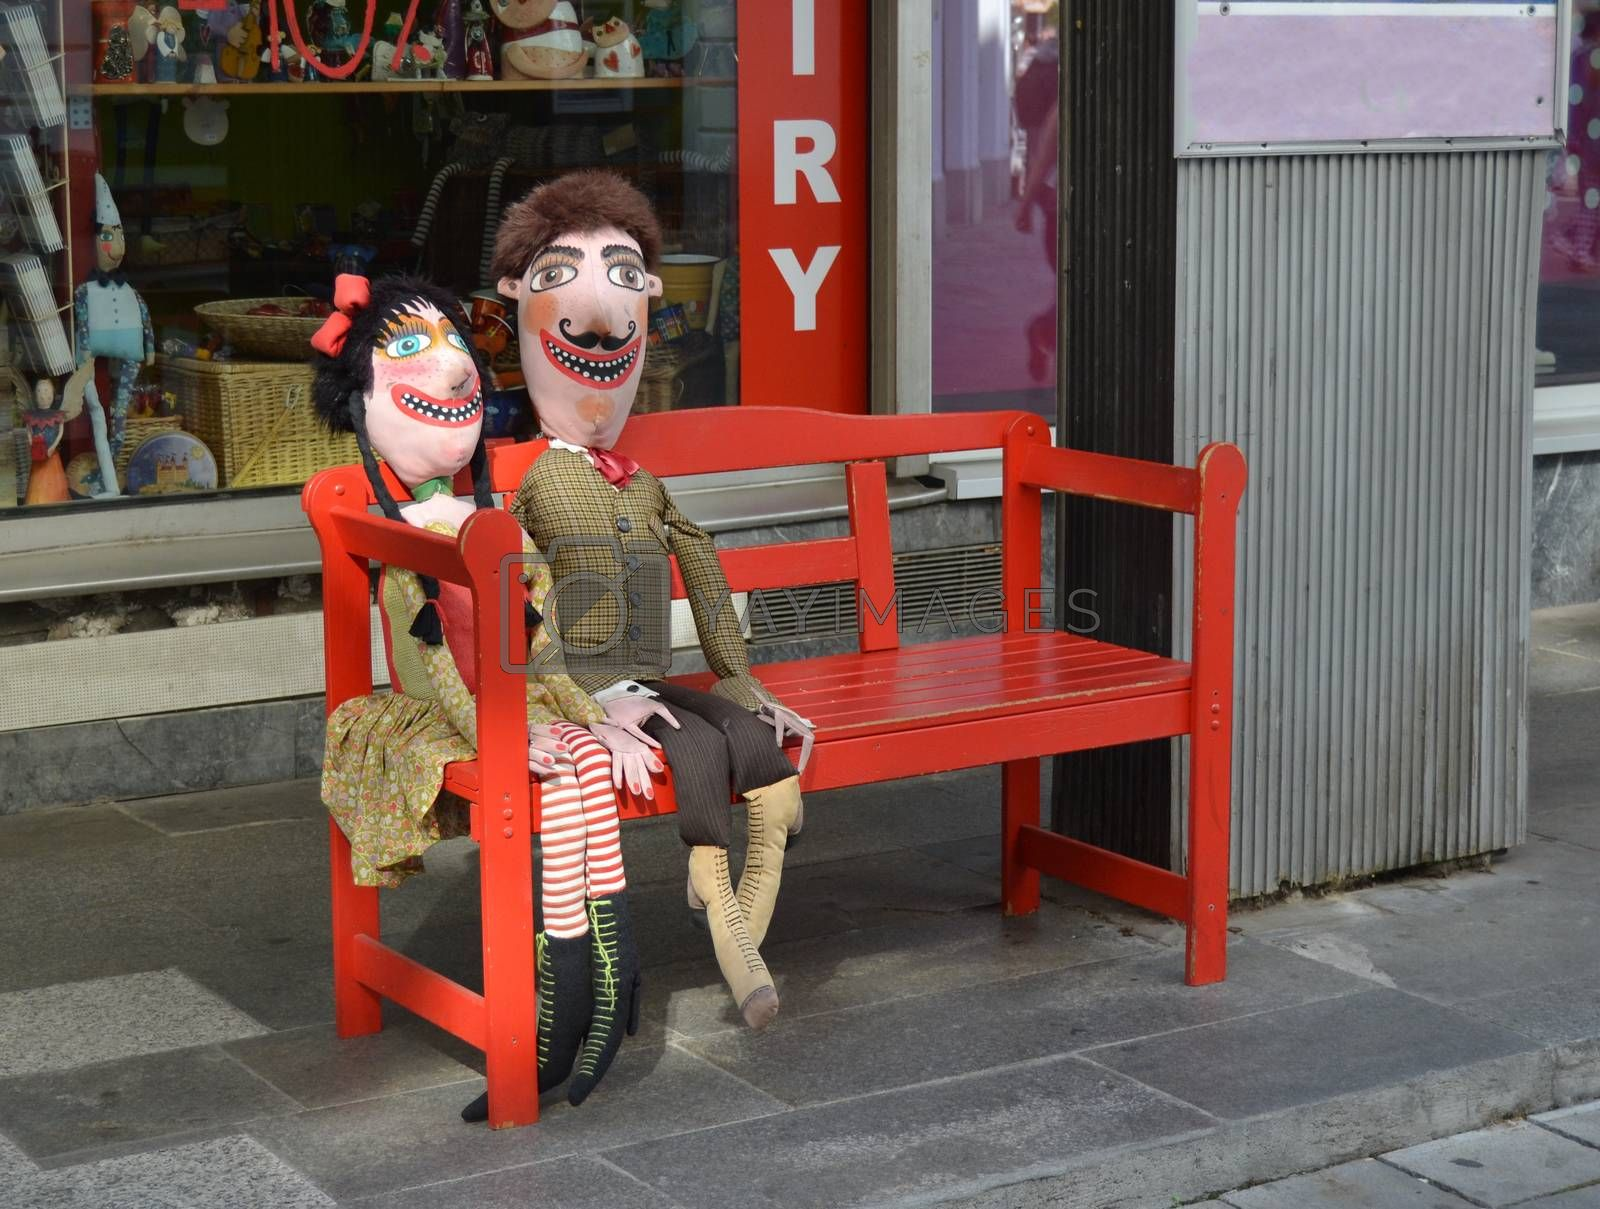 Puppet couple imitating a married couple sitting on a bench in the street